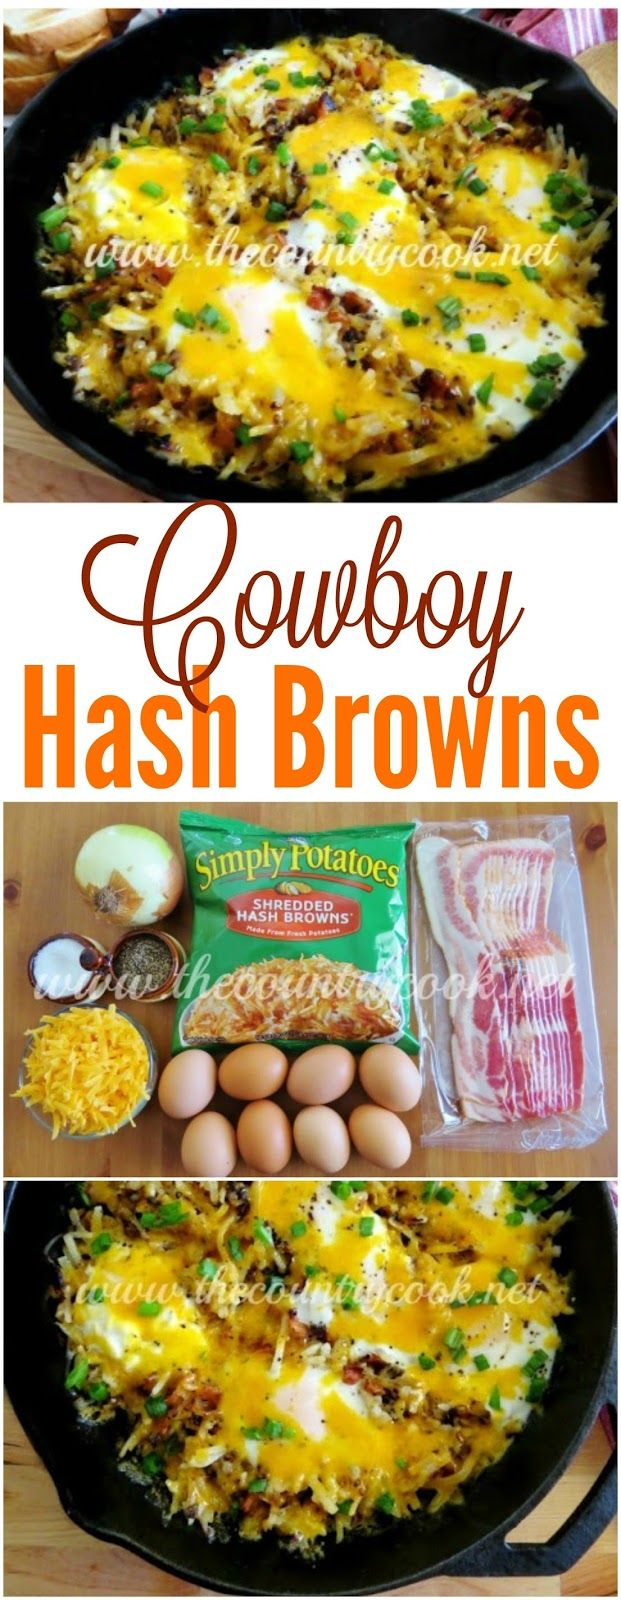 Cowboy Hashbrown Skillet recipe from The Country Cook. Eggs, bacon, cheese, hash…